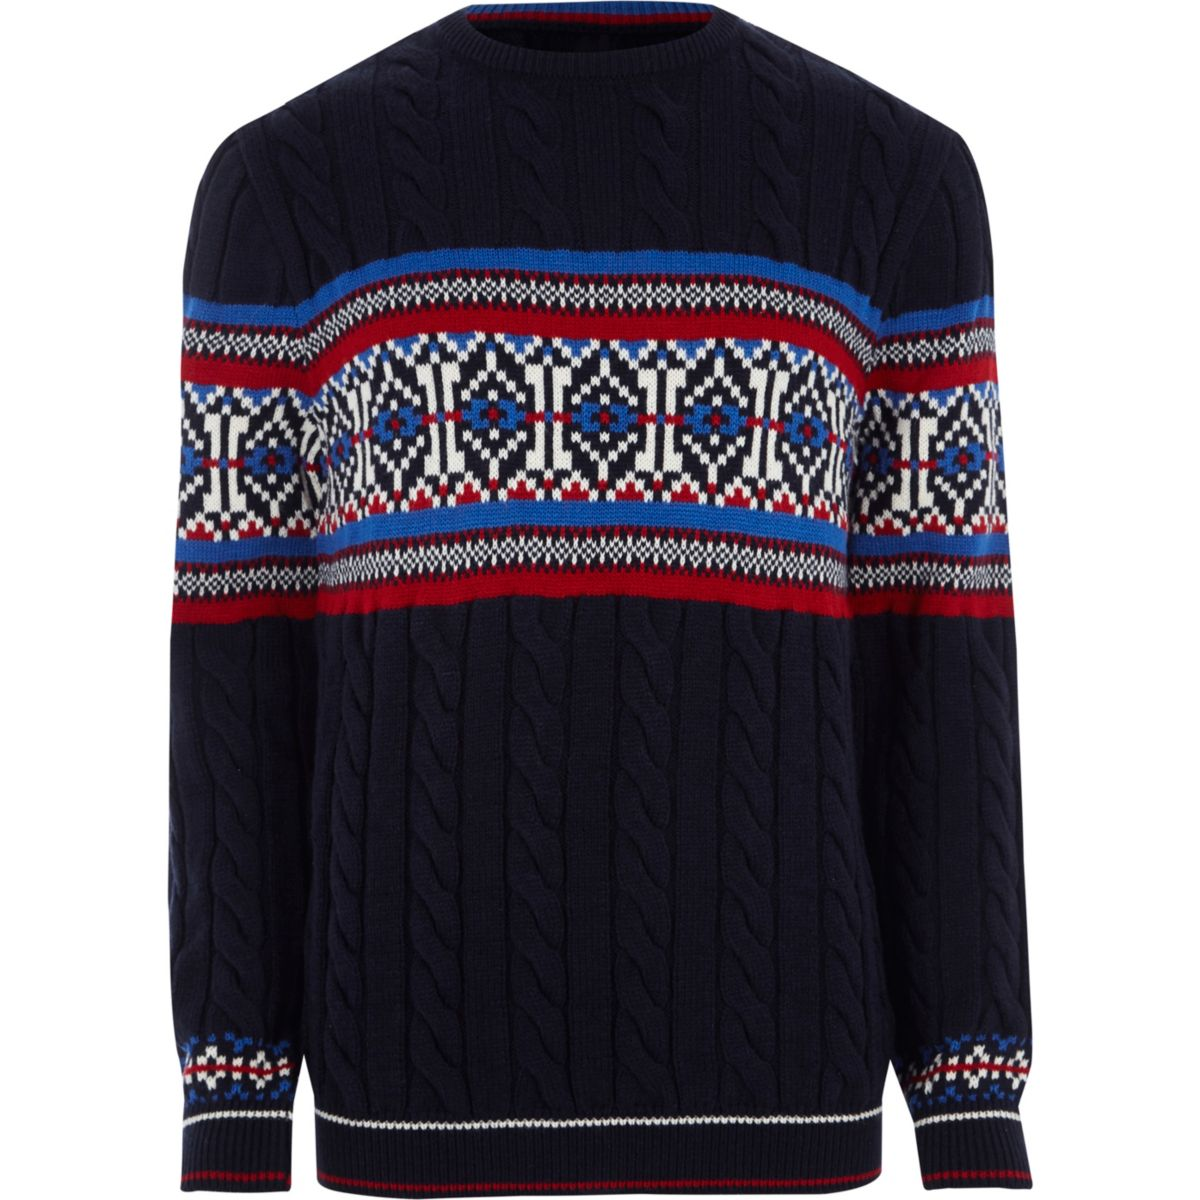 Navy Fairisle cable knit Christmas sweater - Sweaters & Cardigans ...